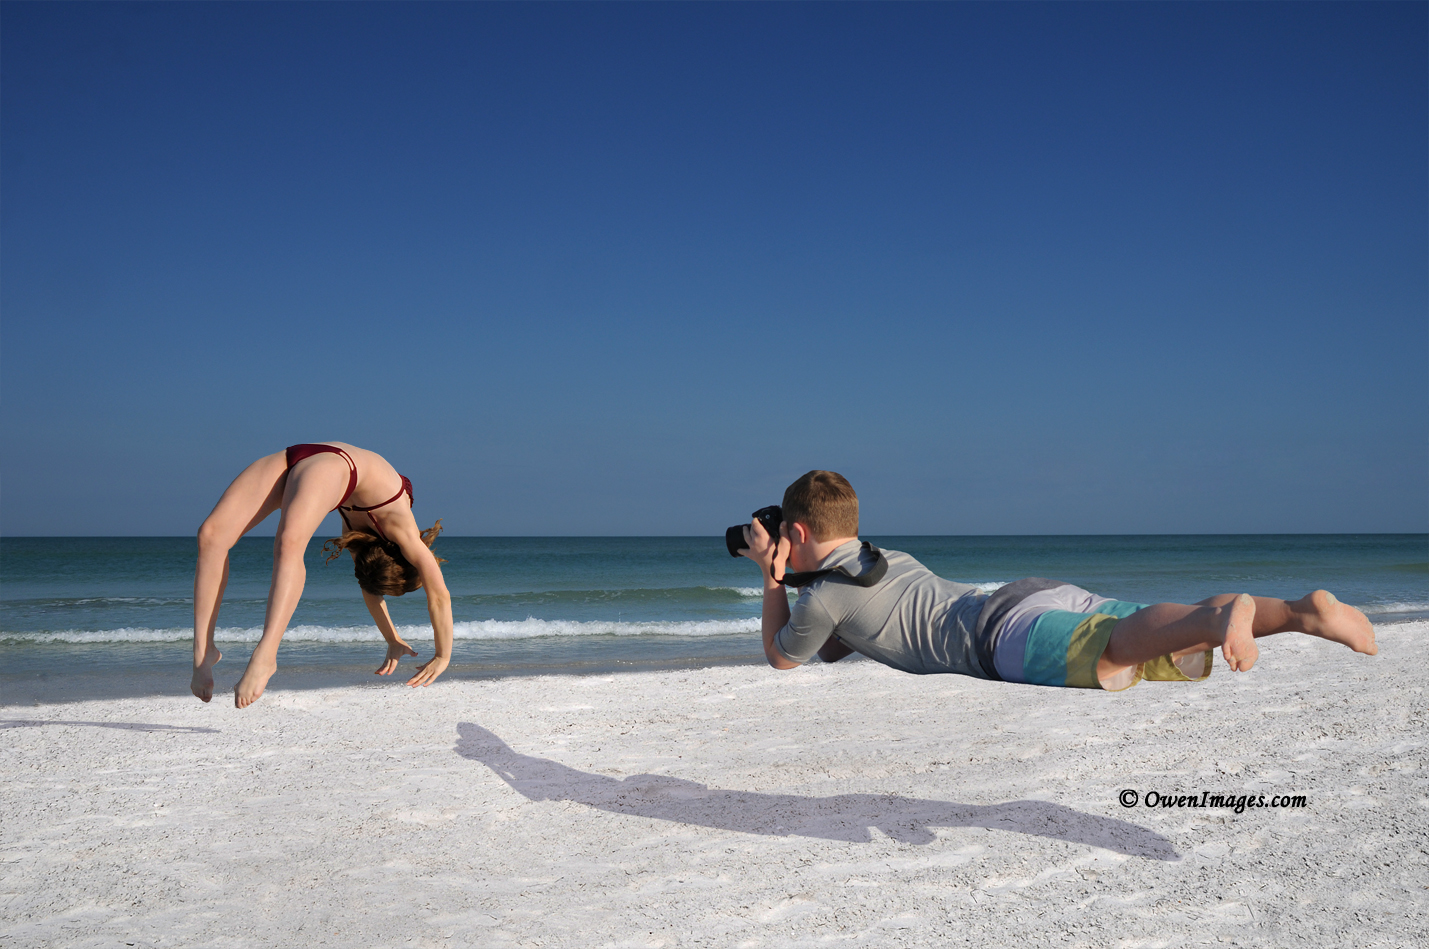 Impossible Becomes Possible - Boy diving to photograph girl performing a back handspring on the beach. @OwenImages